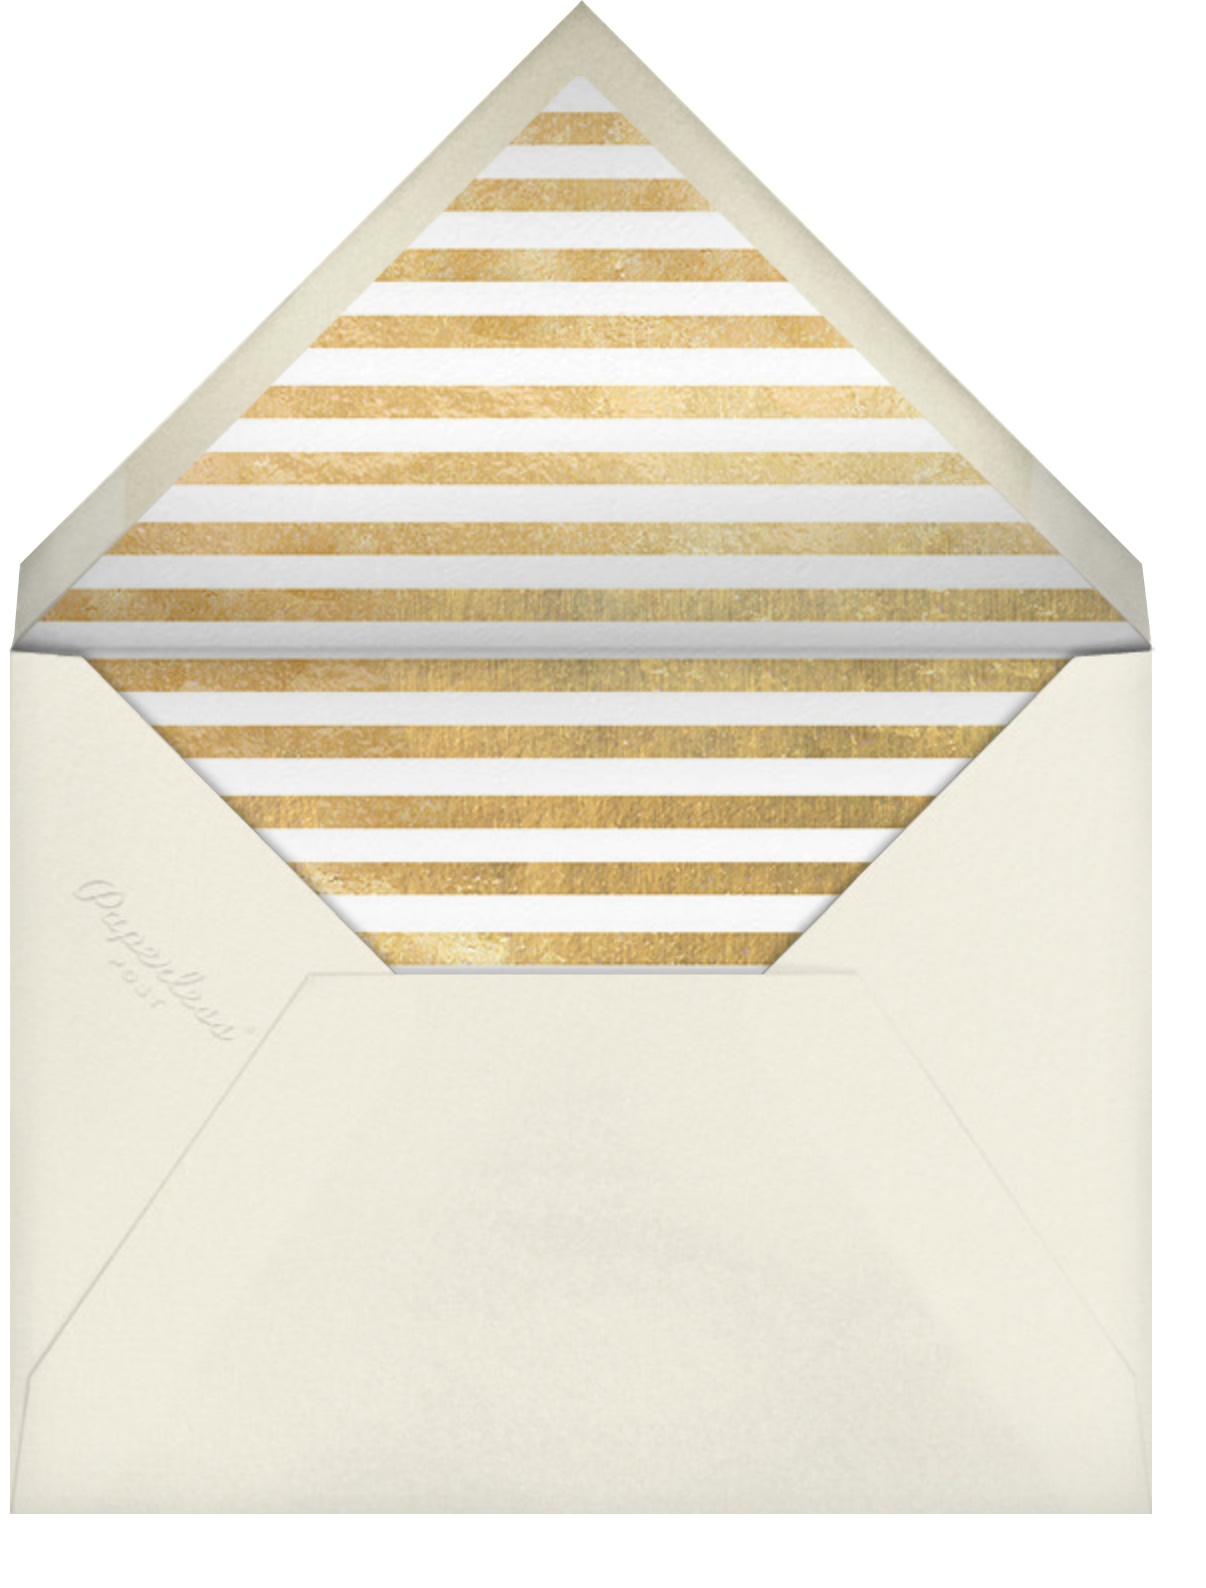 Confetti New Year (Invitation) - Gold/Cream - kate spade new york - New Year's Eve - envelope back